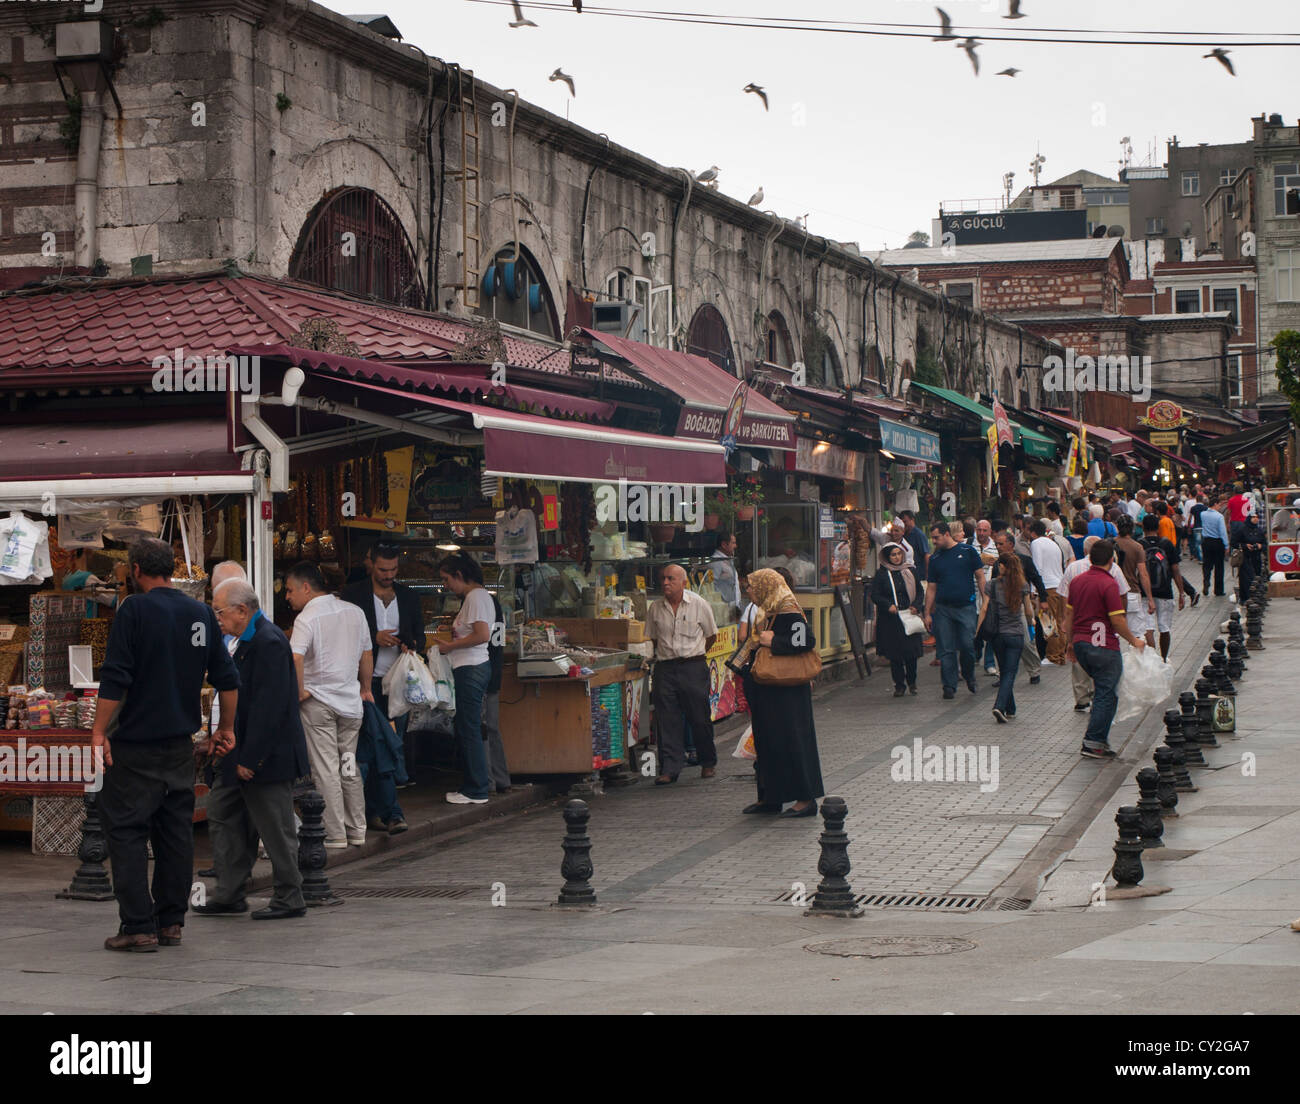 The Egyptian bazaar or spice market, in Istanbul Turkey, an interesting place, here outside view with shoppers and - Stock Image